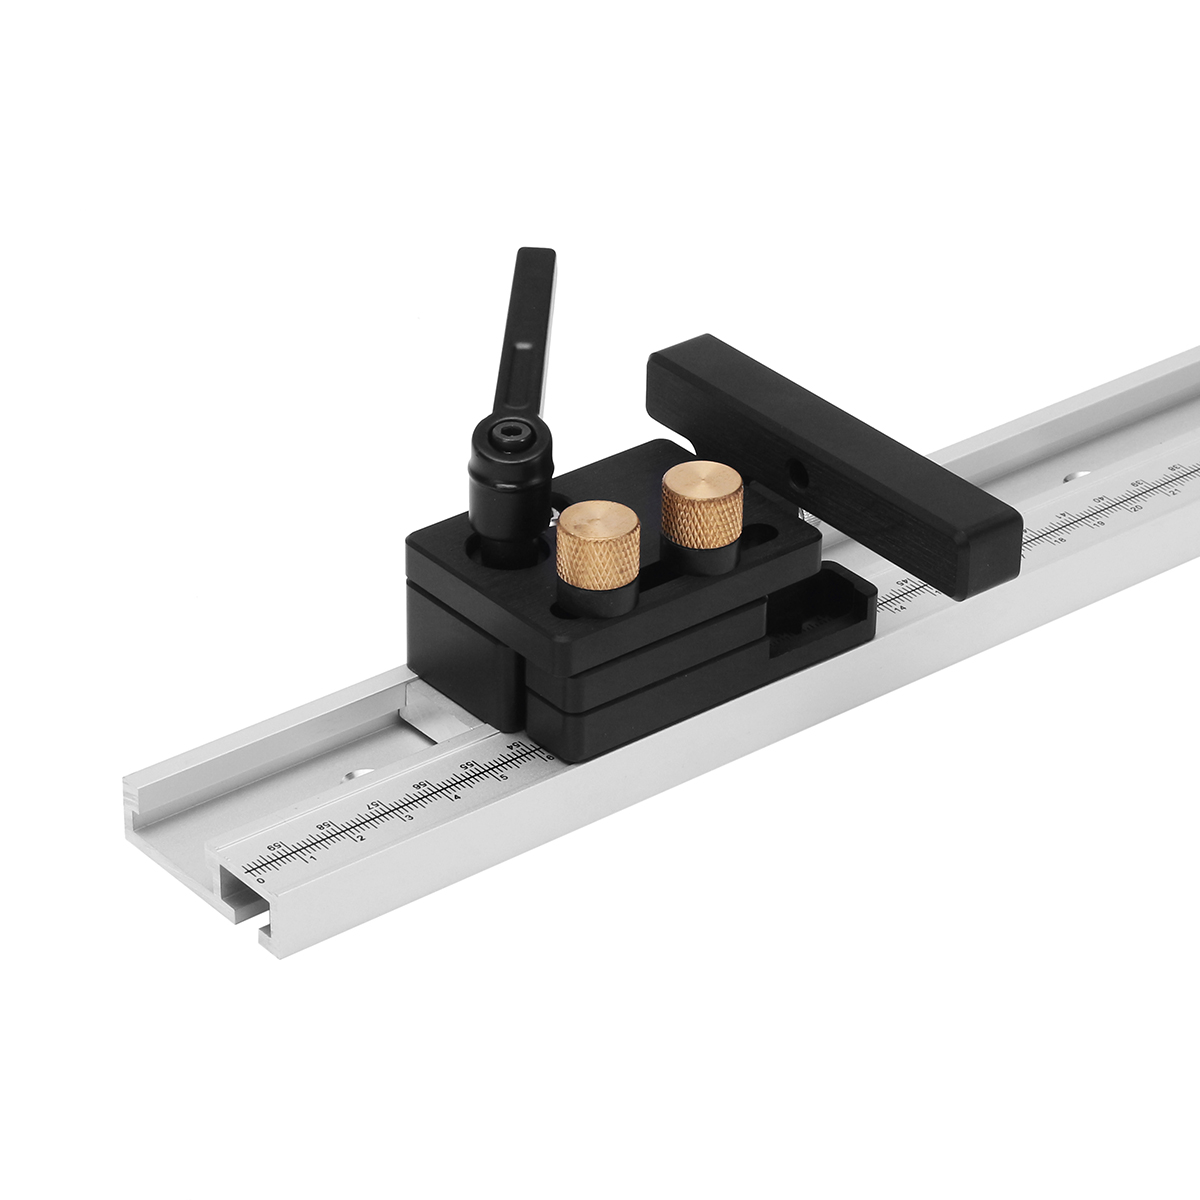 45x12.8mm 600/800/1000/1200mm Aluminum Alloy T-Track Woodworking T-slot Miter Track With Scale/Miter Track Stop